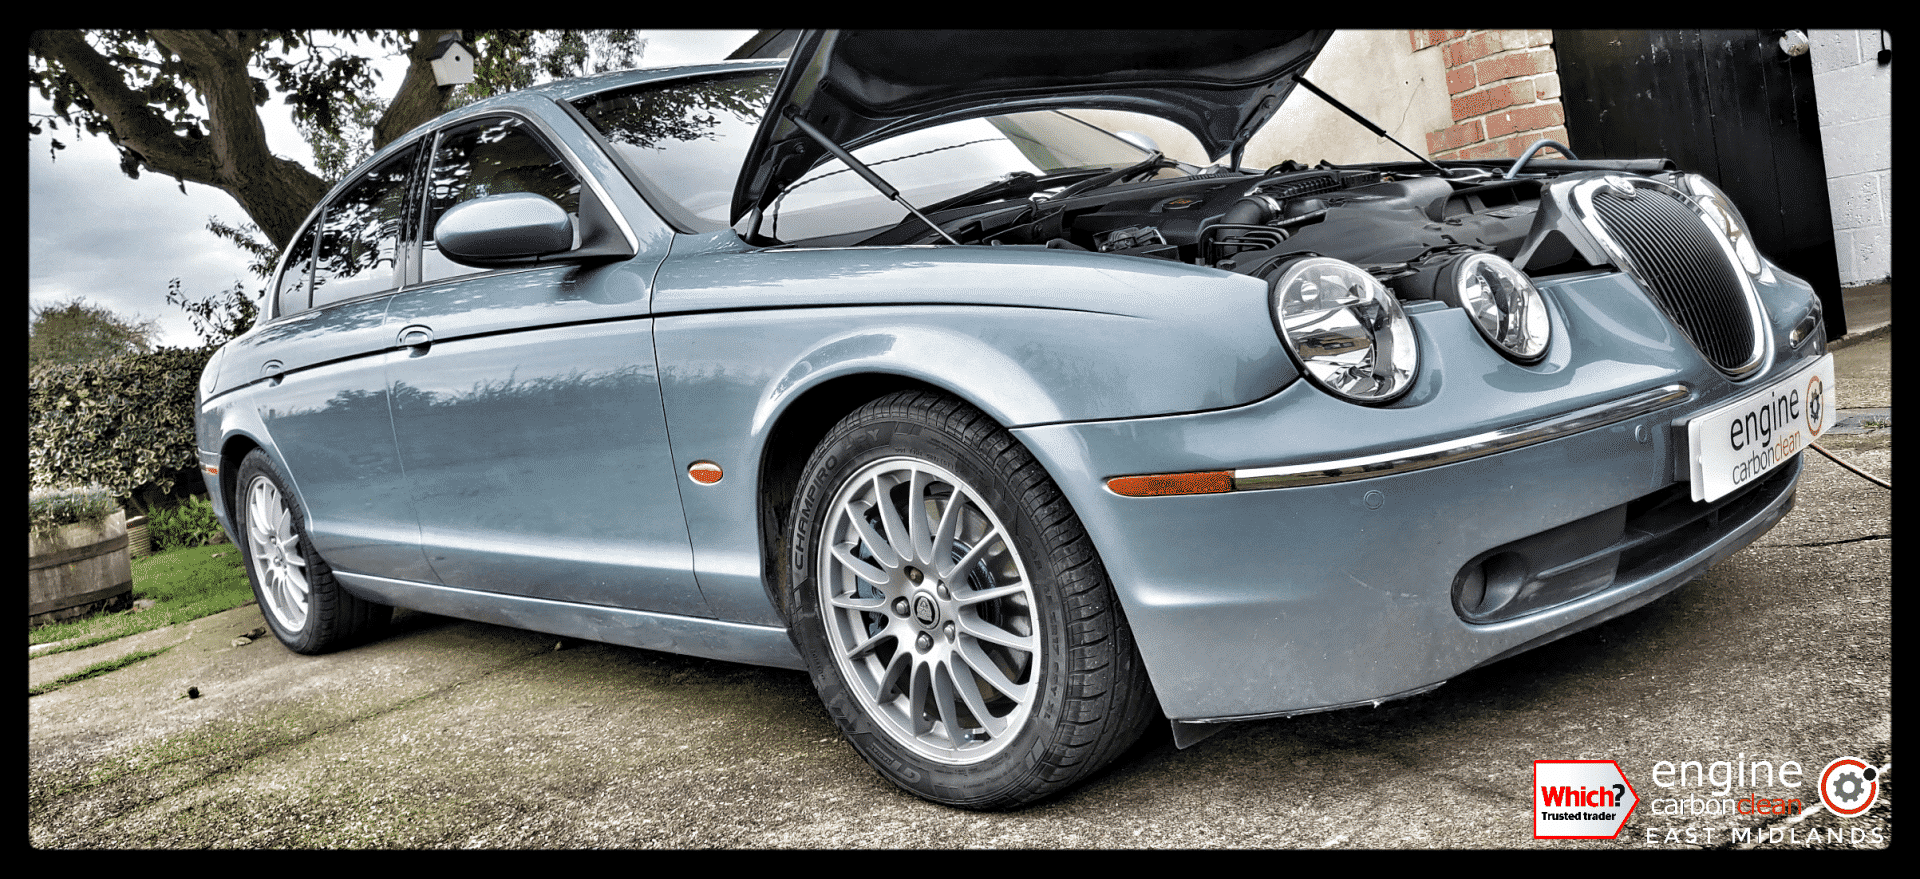 Diagnostic Consultation and Engine Carbon Clean on a Jaguar S-Type 2.7d V6 (2006 - 89,220 miles)